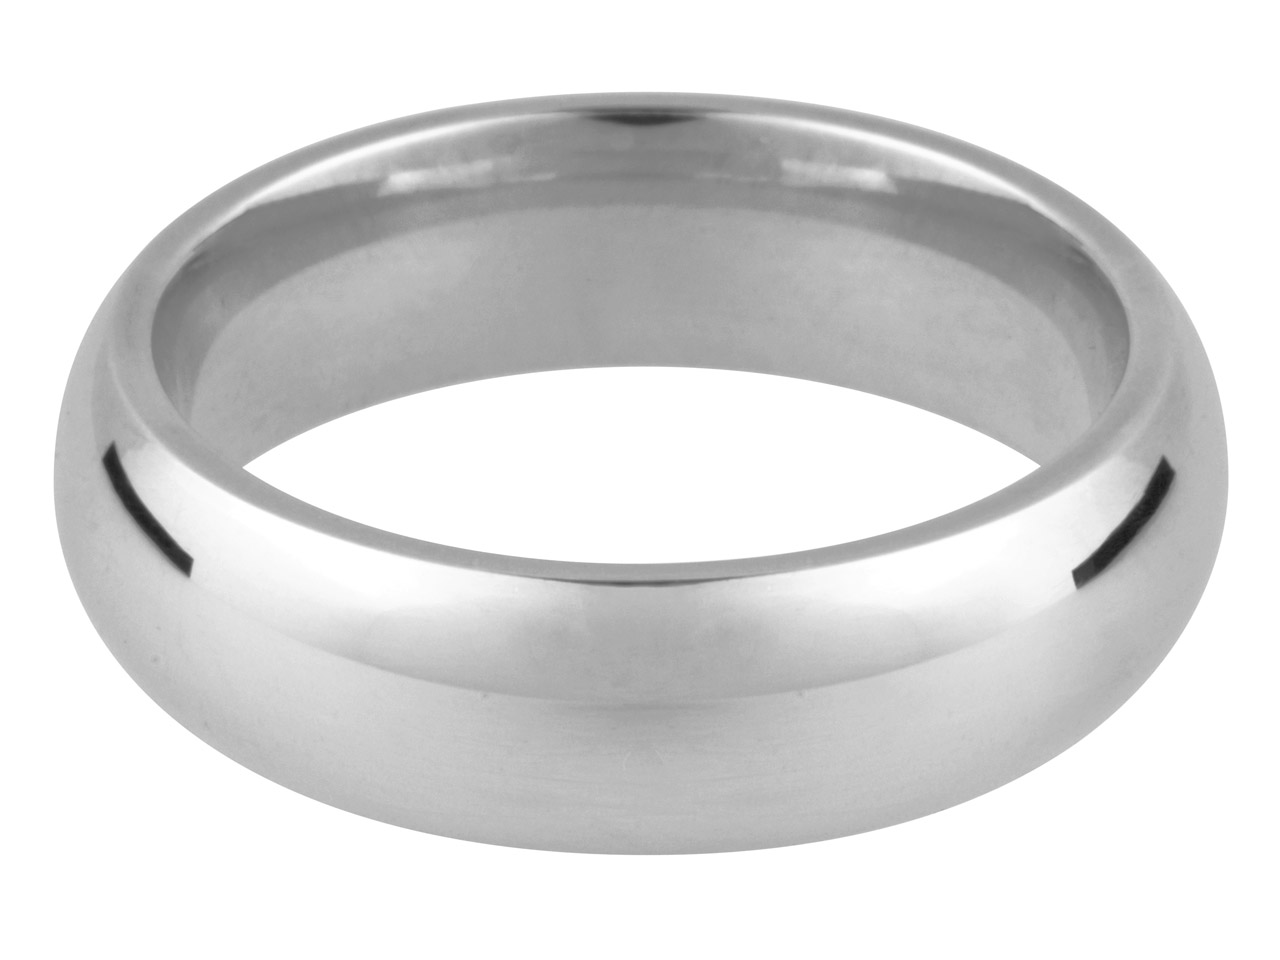 Silver Court Wedding Ring 3.0mm M   3.3gms Heavy Weight Hallmarked Wall Thickness 2.04mm